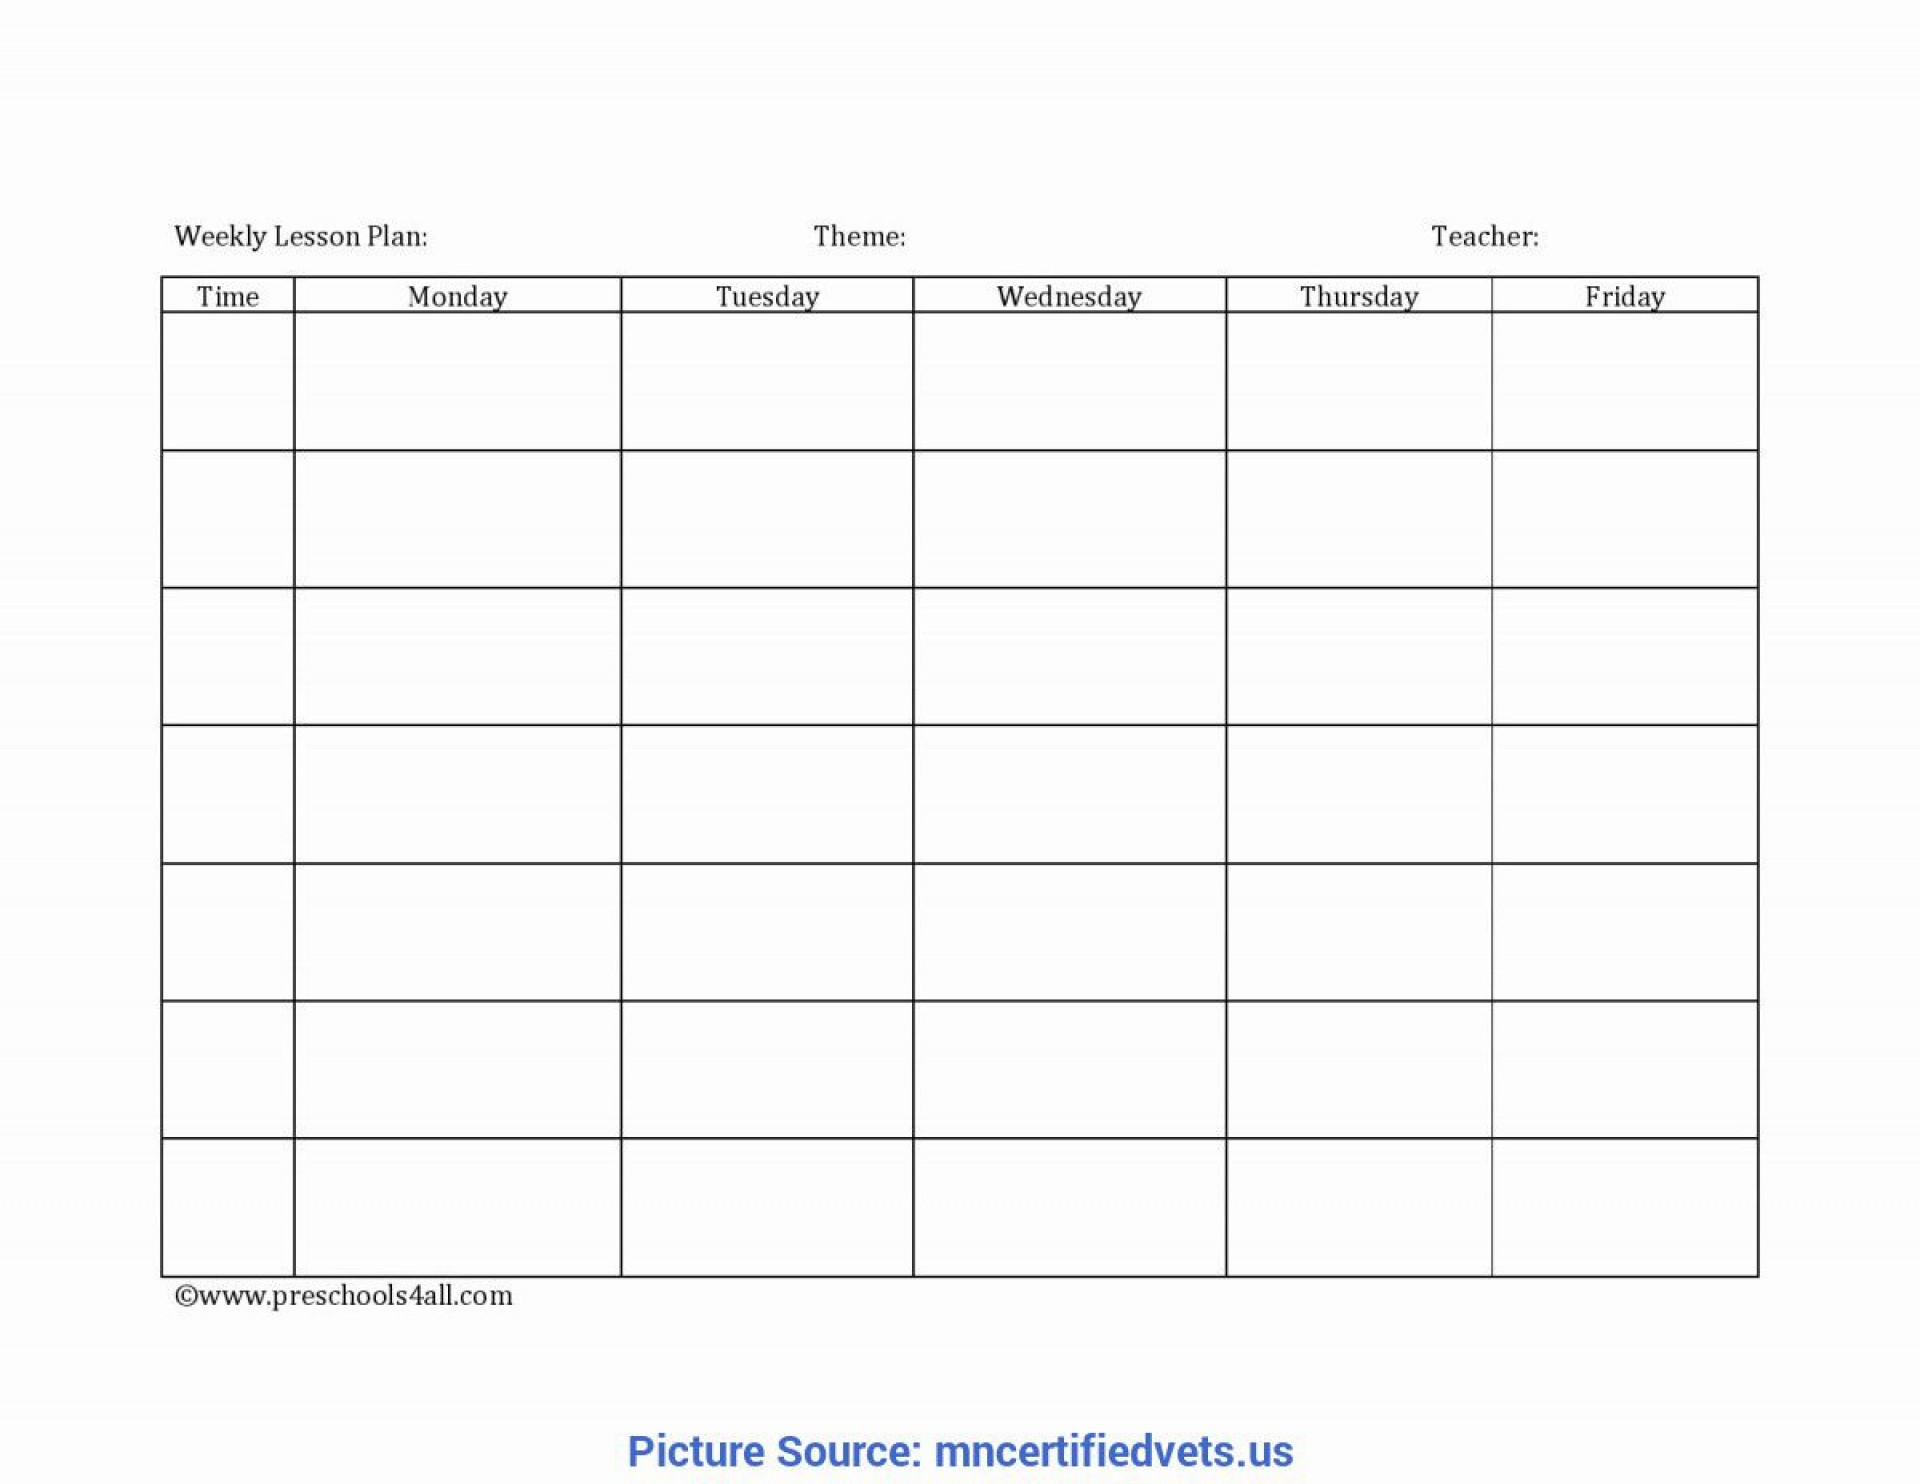 006 Unbelievable Weekly Lesson Plan Template Photo  Editable Preschool Pdf Google Sheet1920